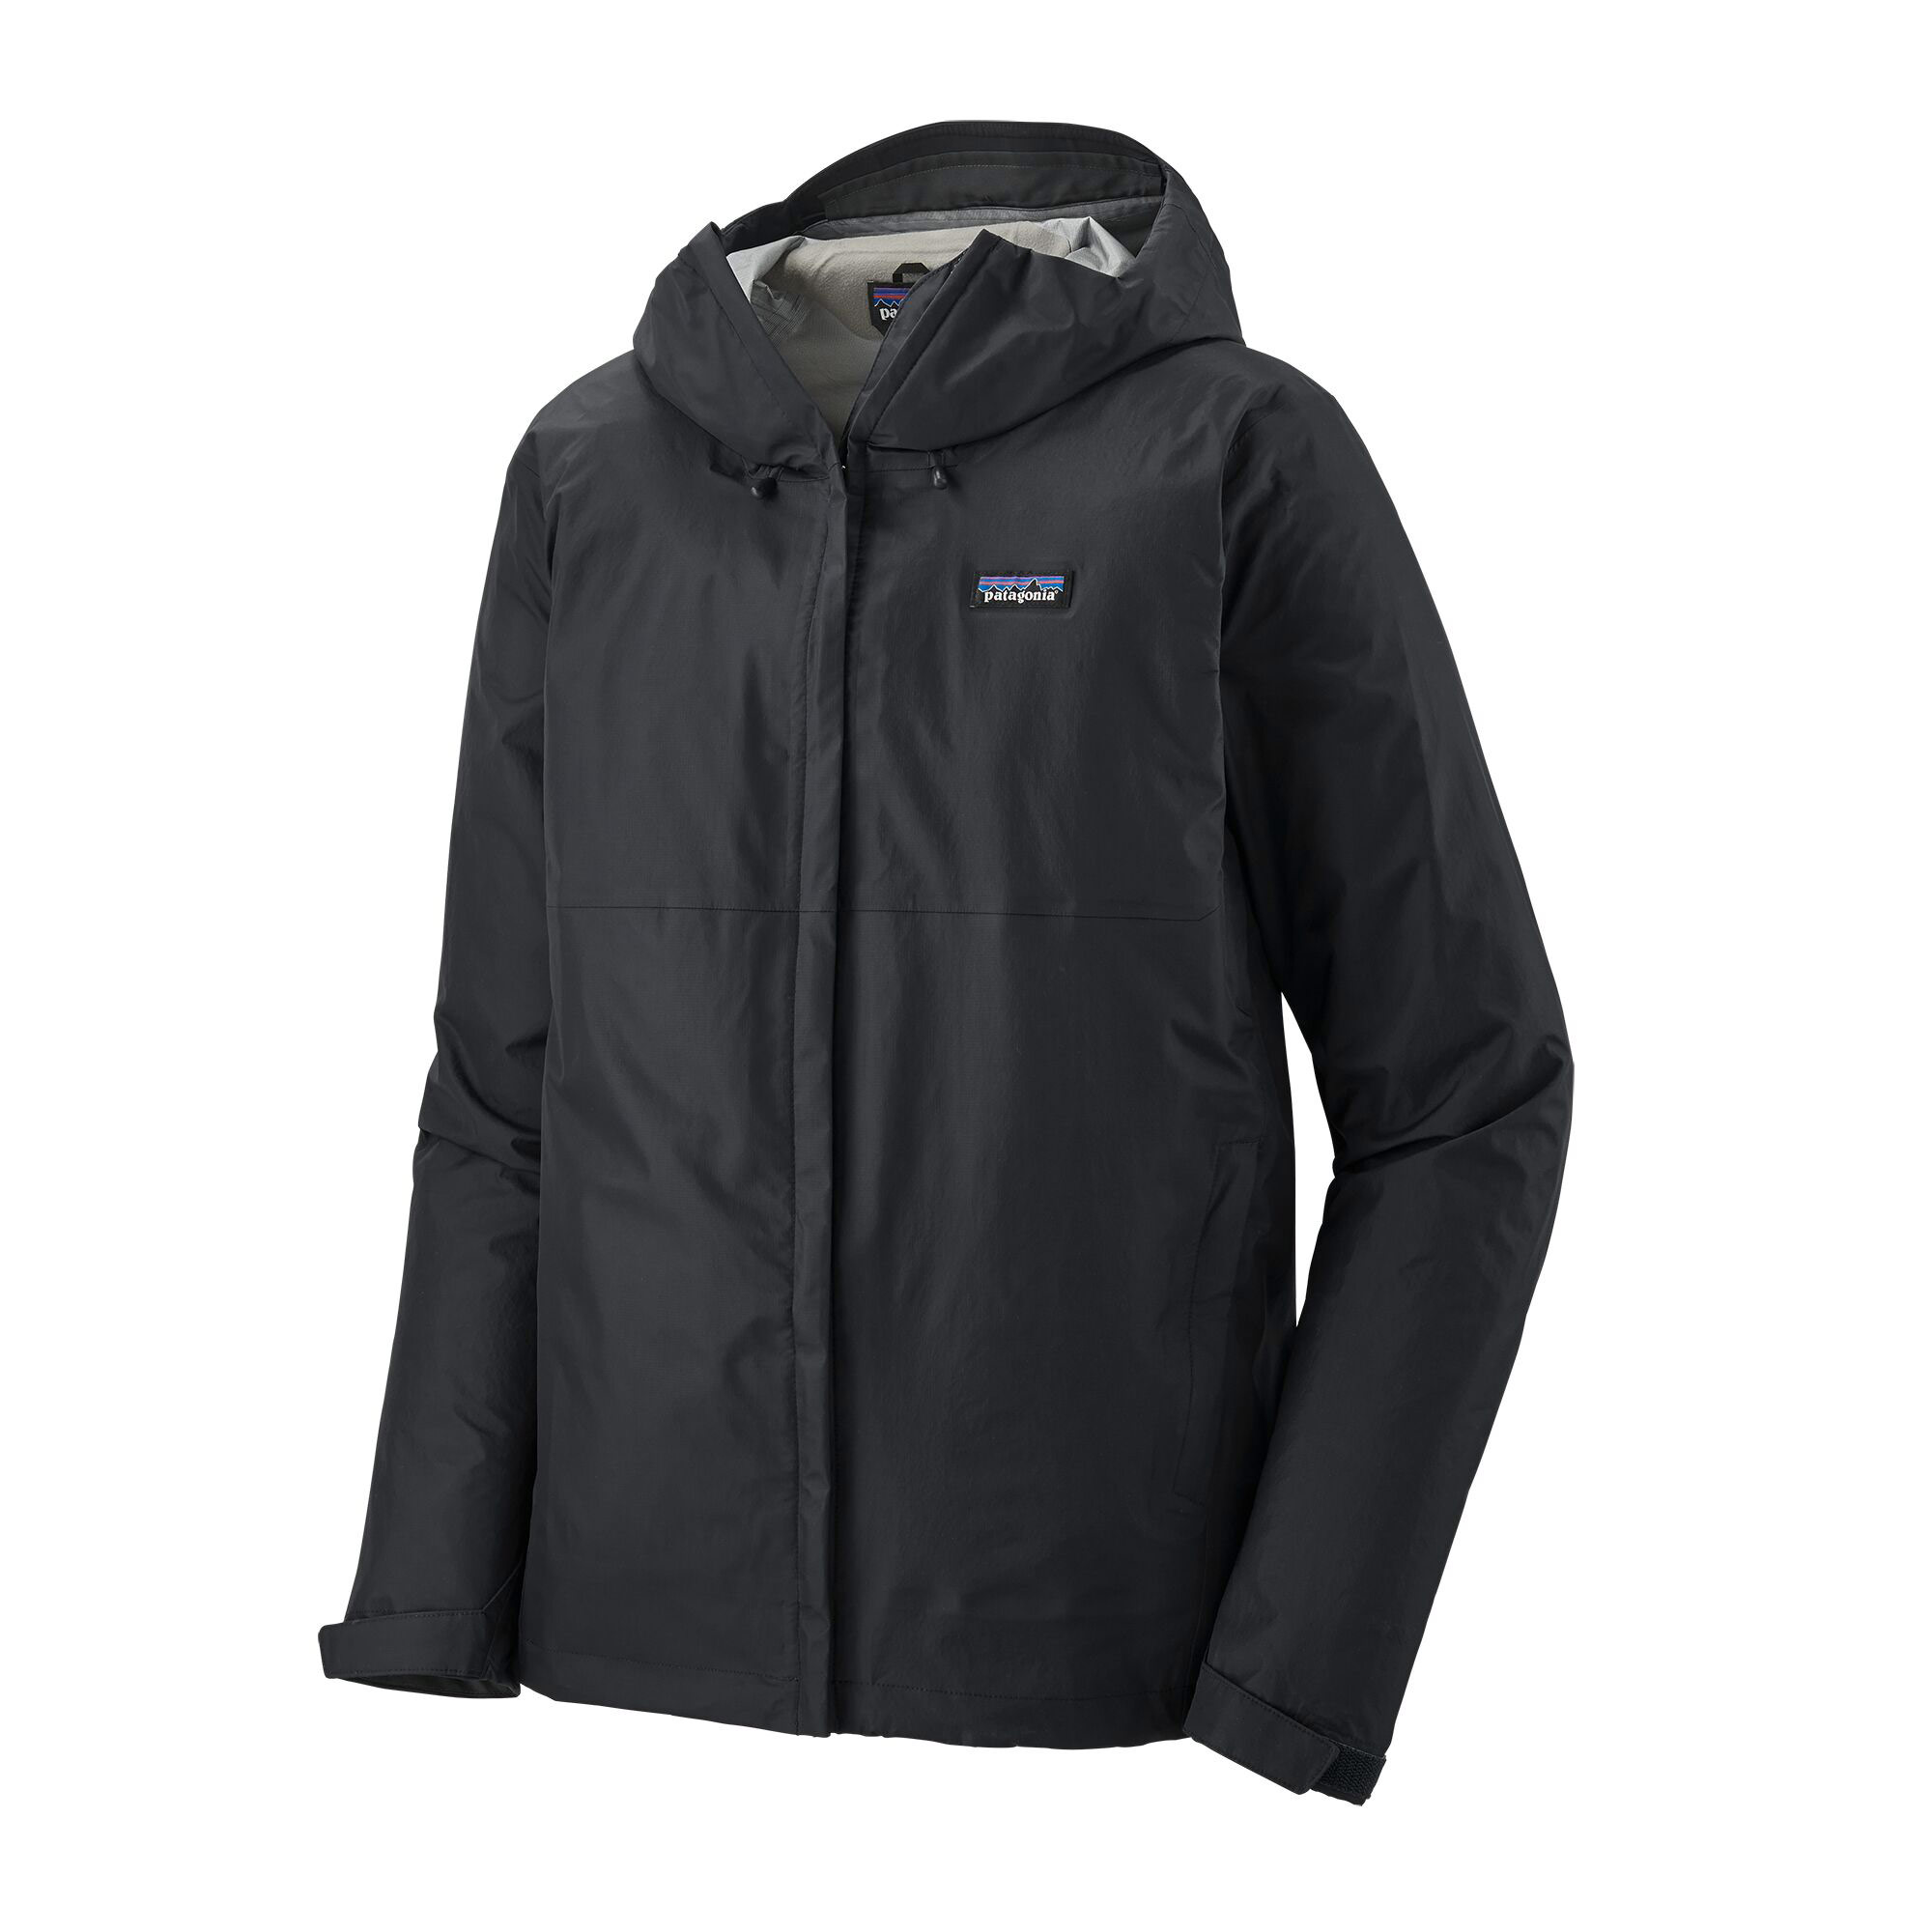 Torrentshell 3L Jacket - Men's